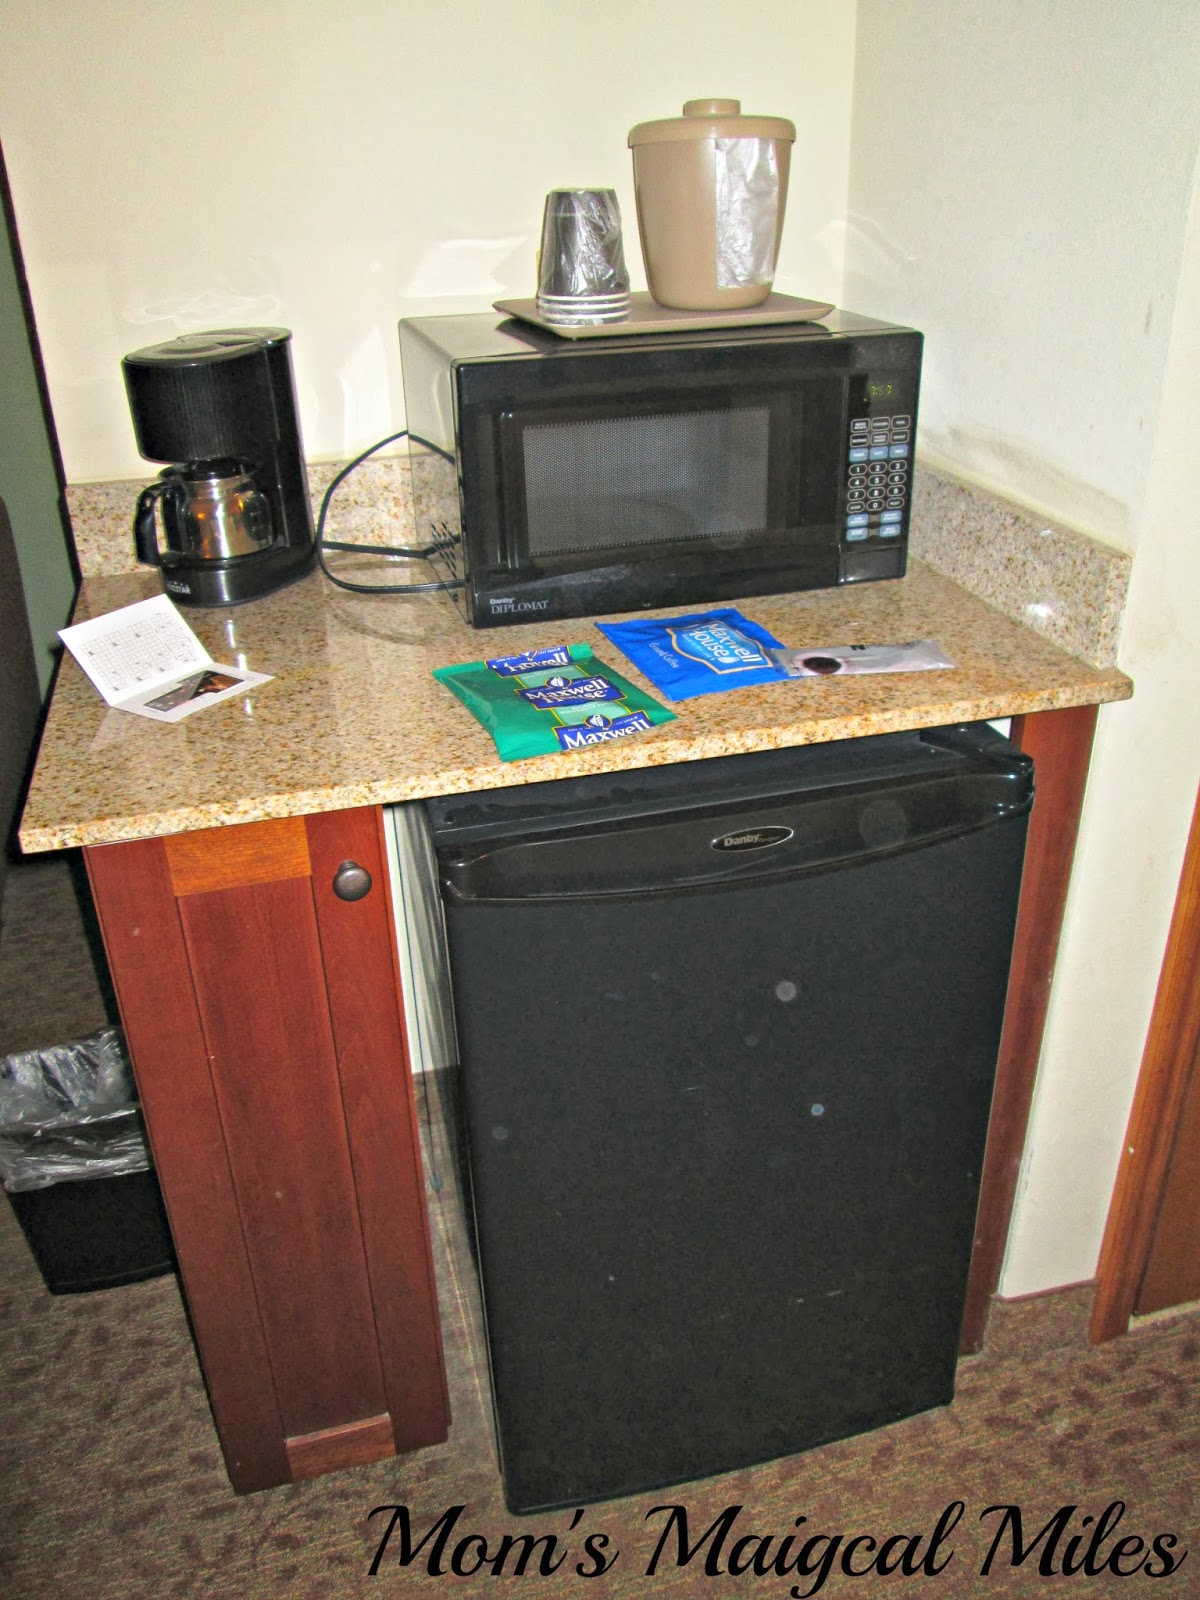 review brookstone lodge asheville mom magical miles helpful families budget microwave  mini fridge cut down costs - Mini Fridge In Bedroom Best Compact Refrigerators Mar Rated List